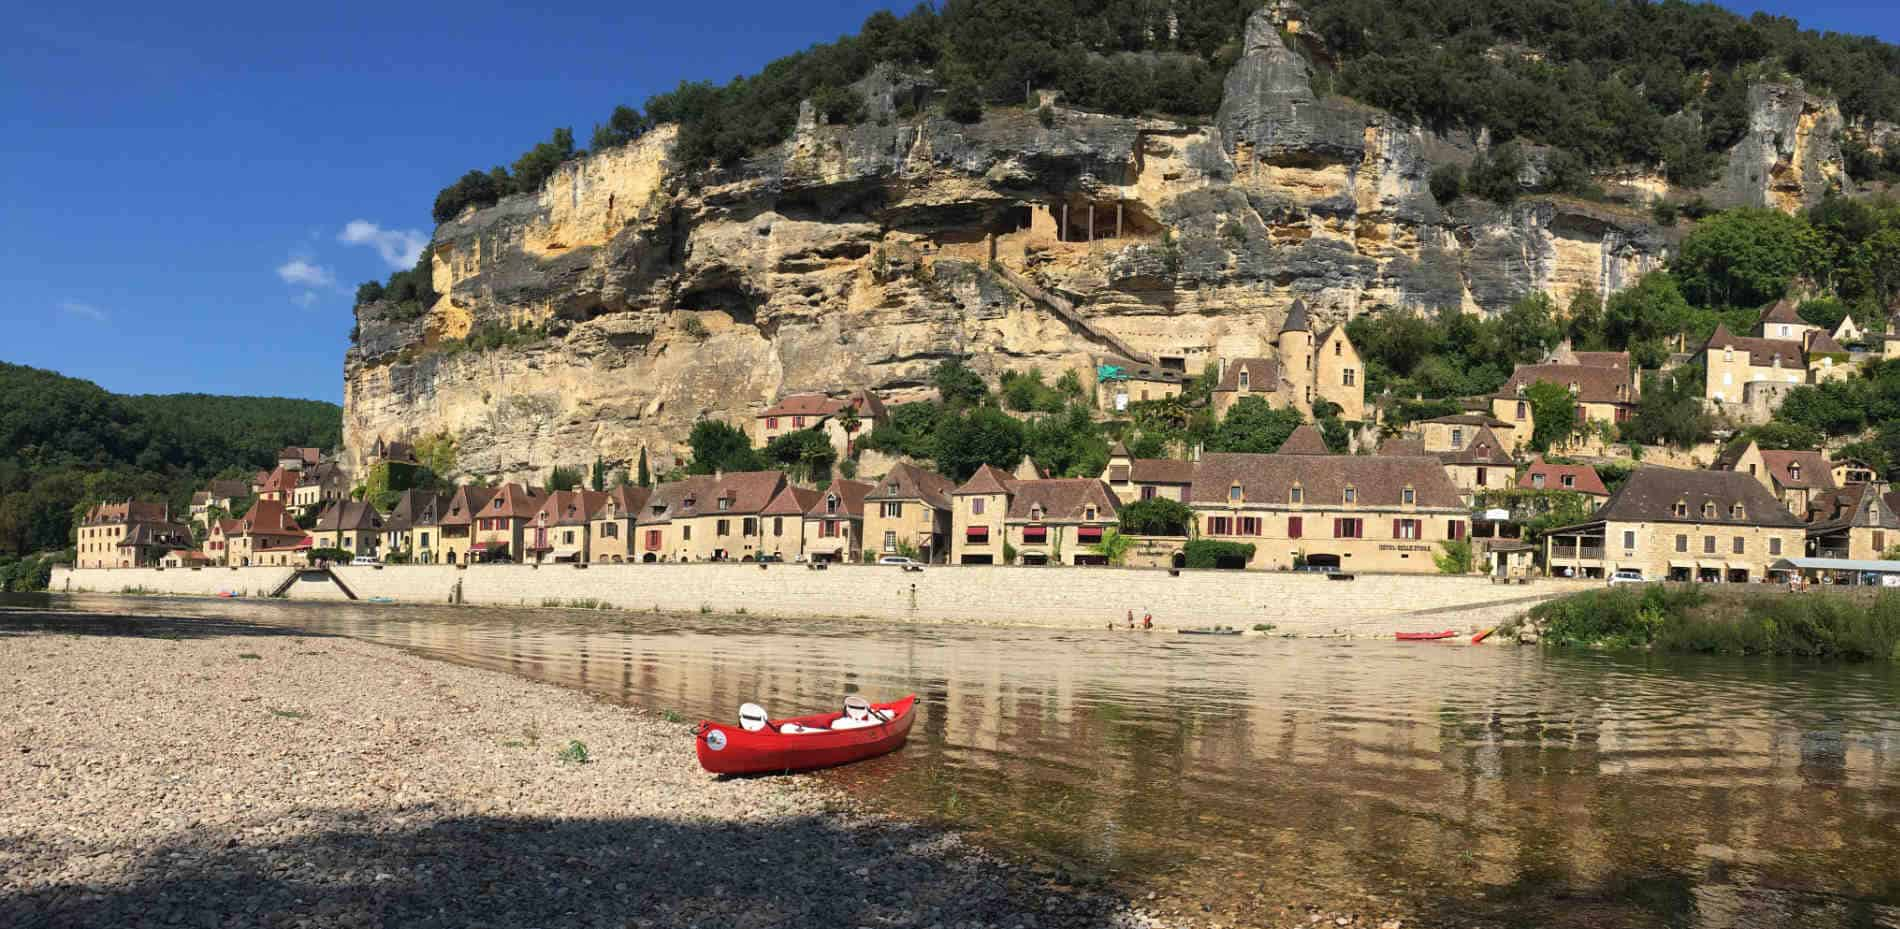 Canoe Dordogne rate rental canoe kayak rental on the dordogne